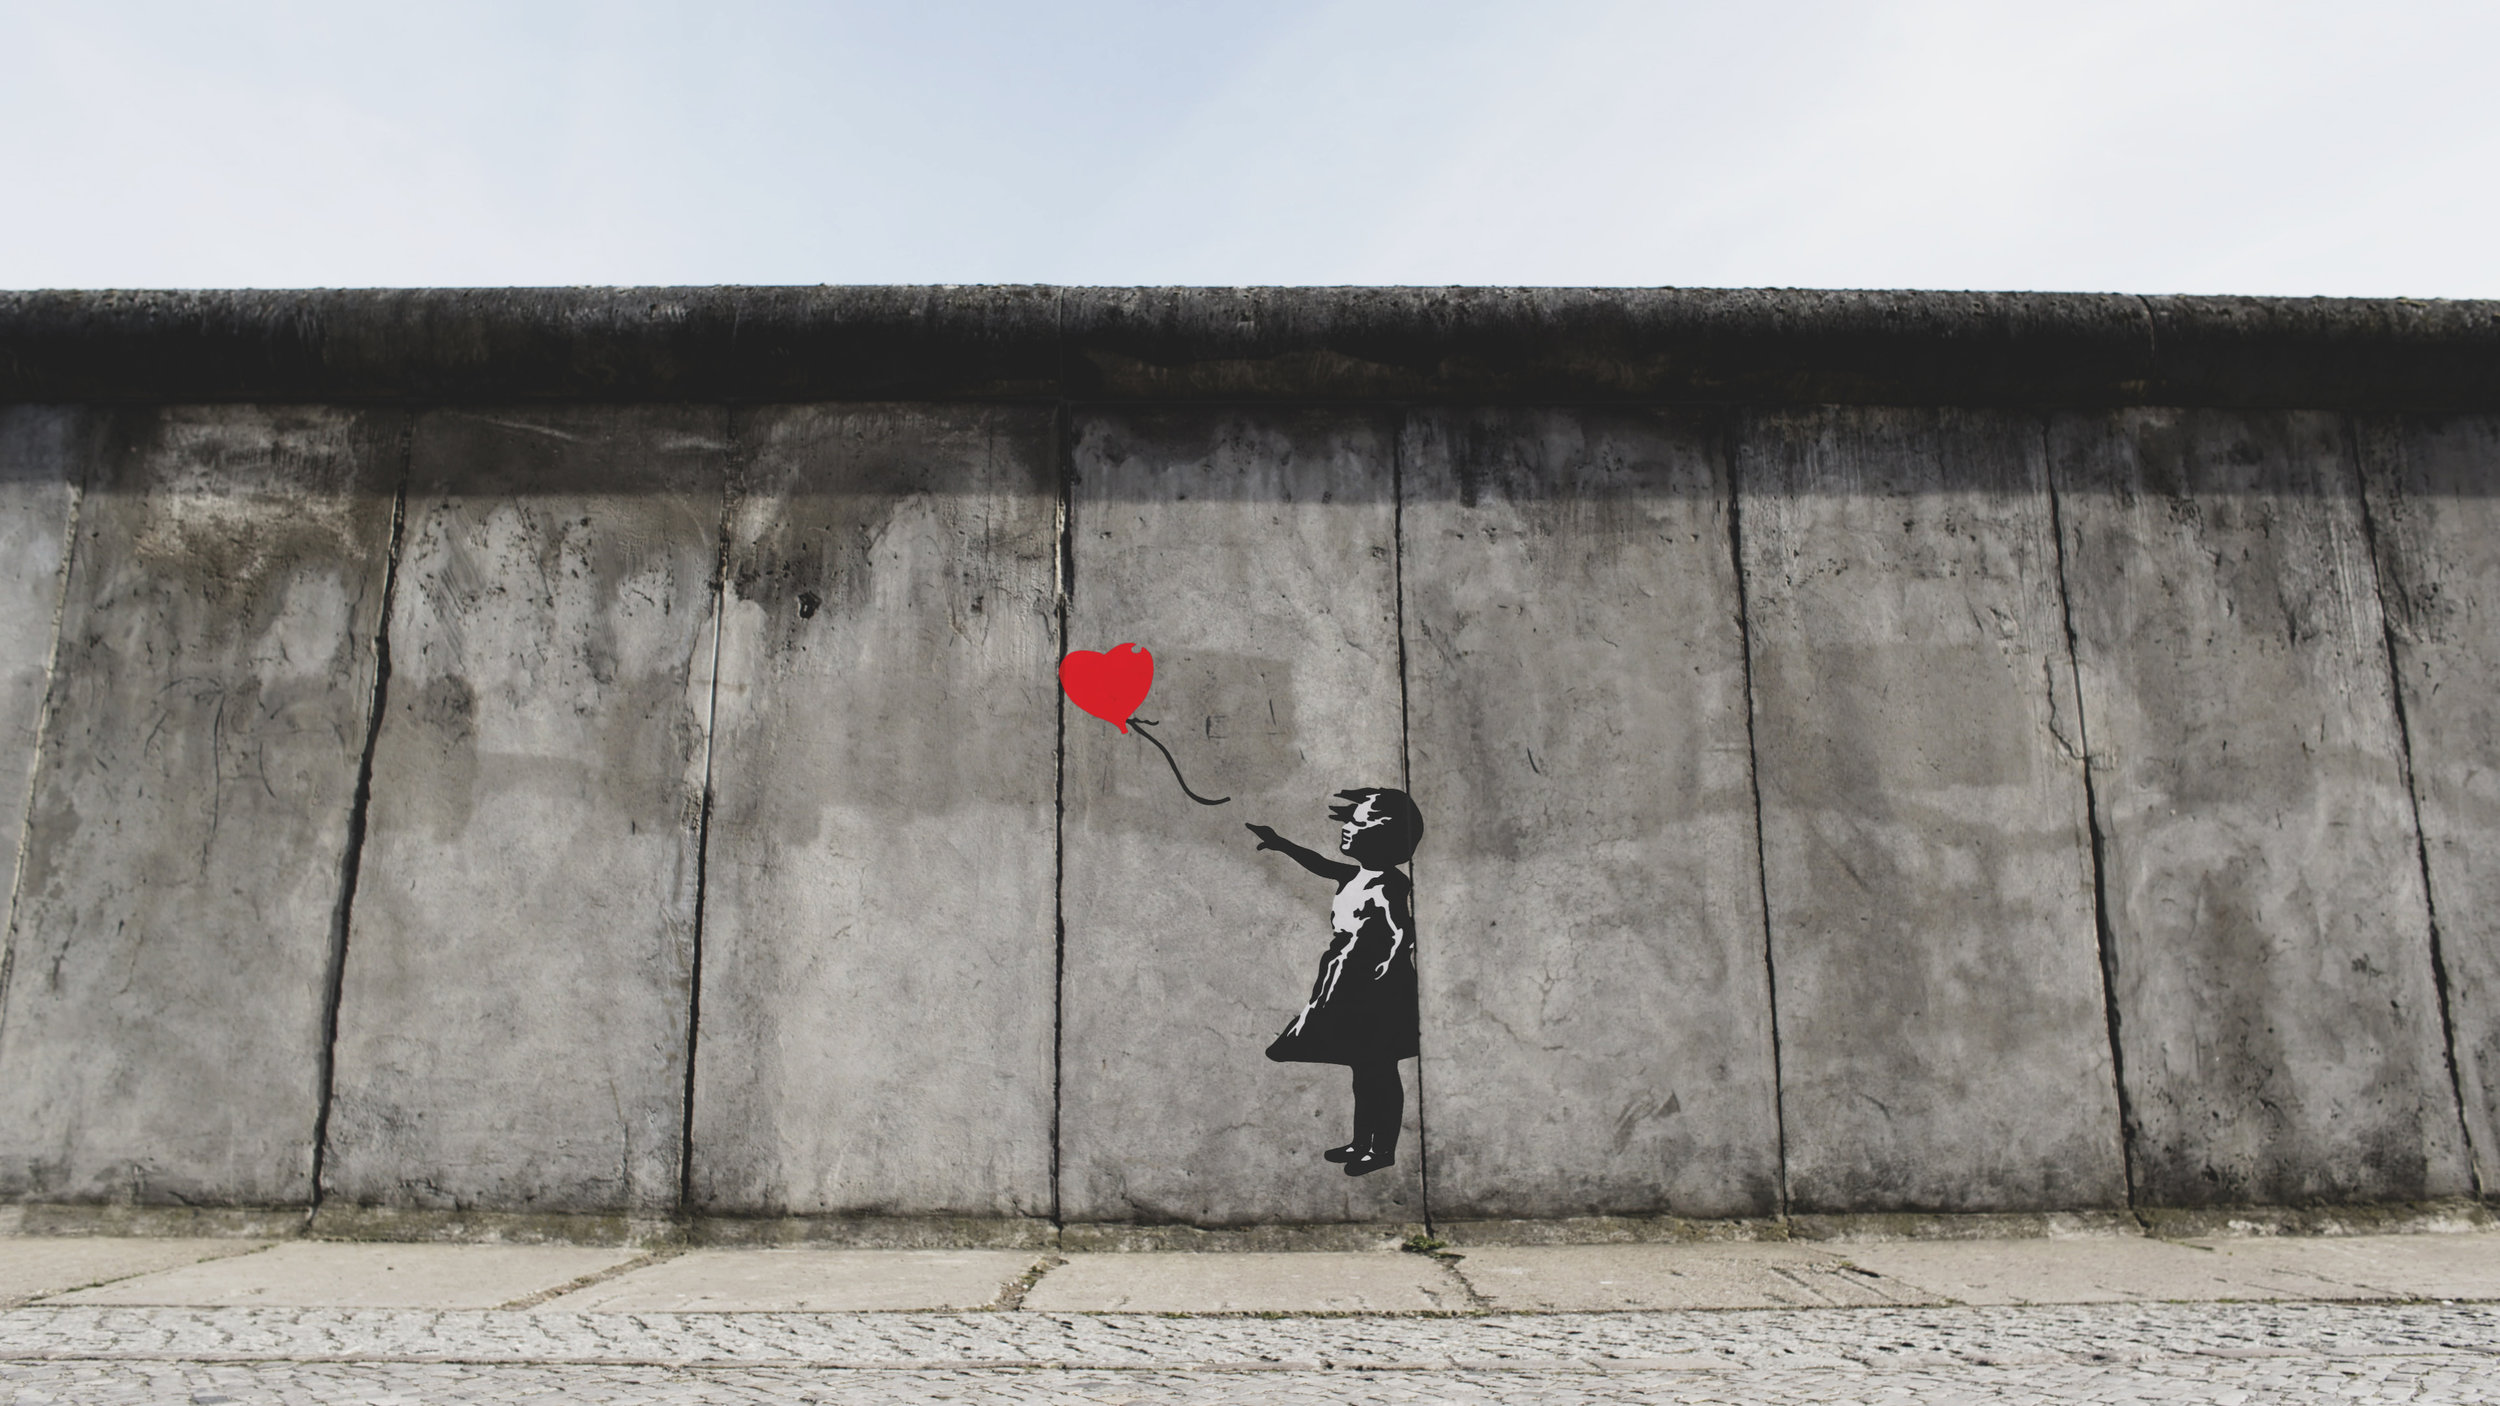 banksy-art-girl-heart-balloon-letting-go